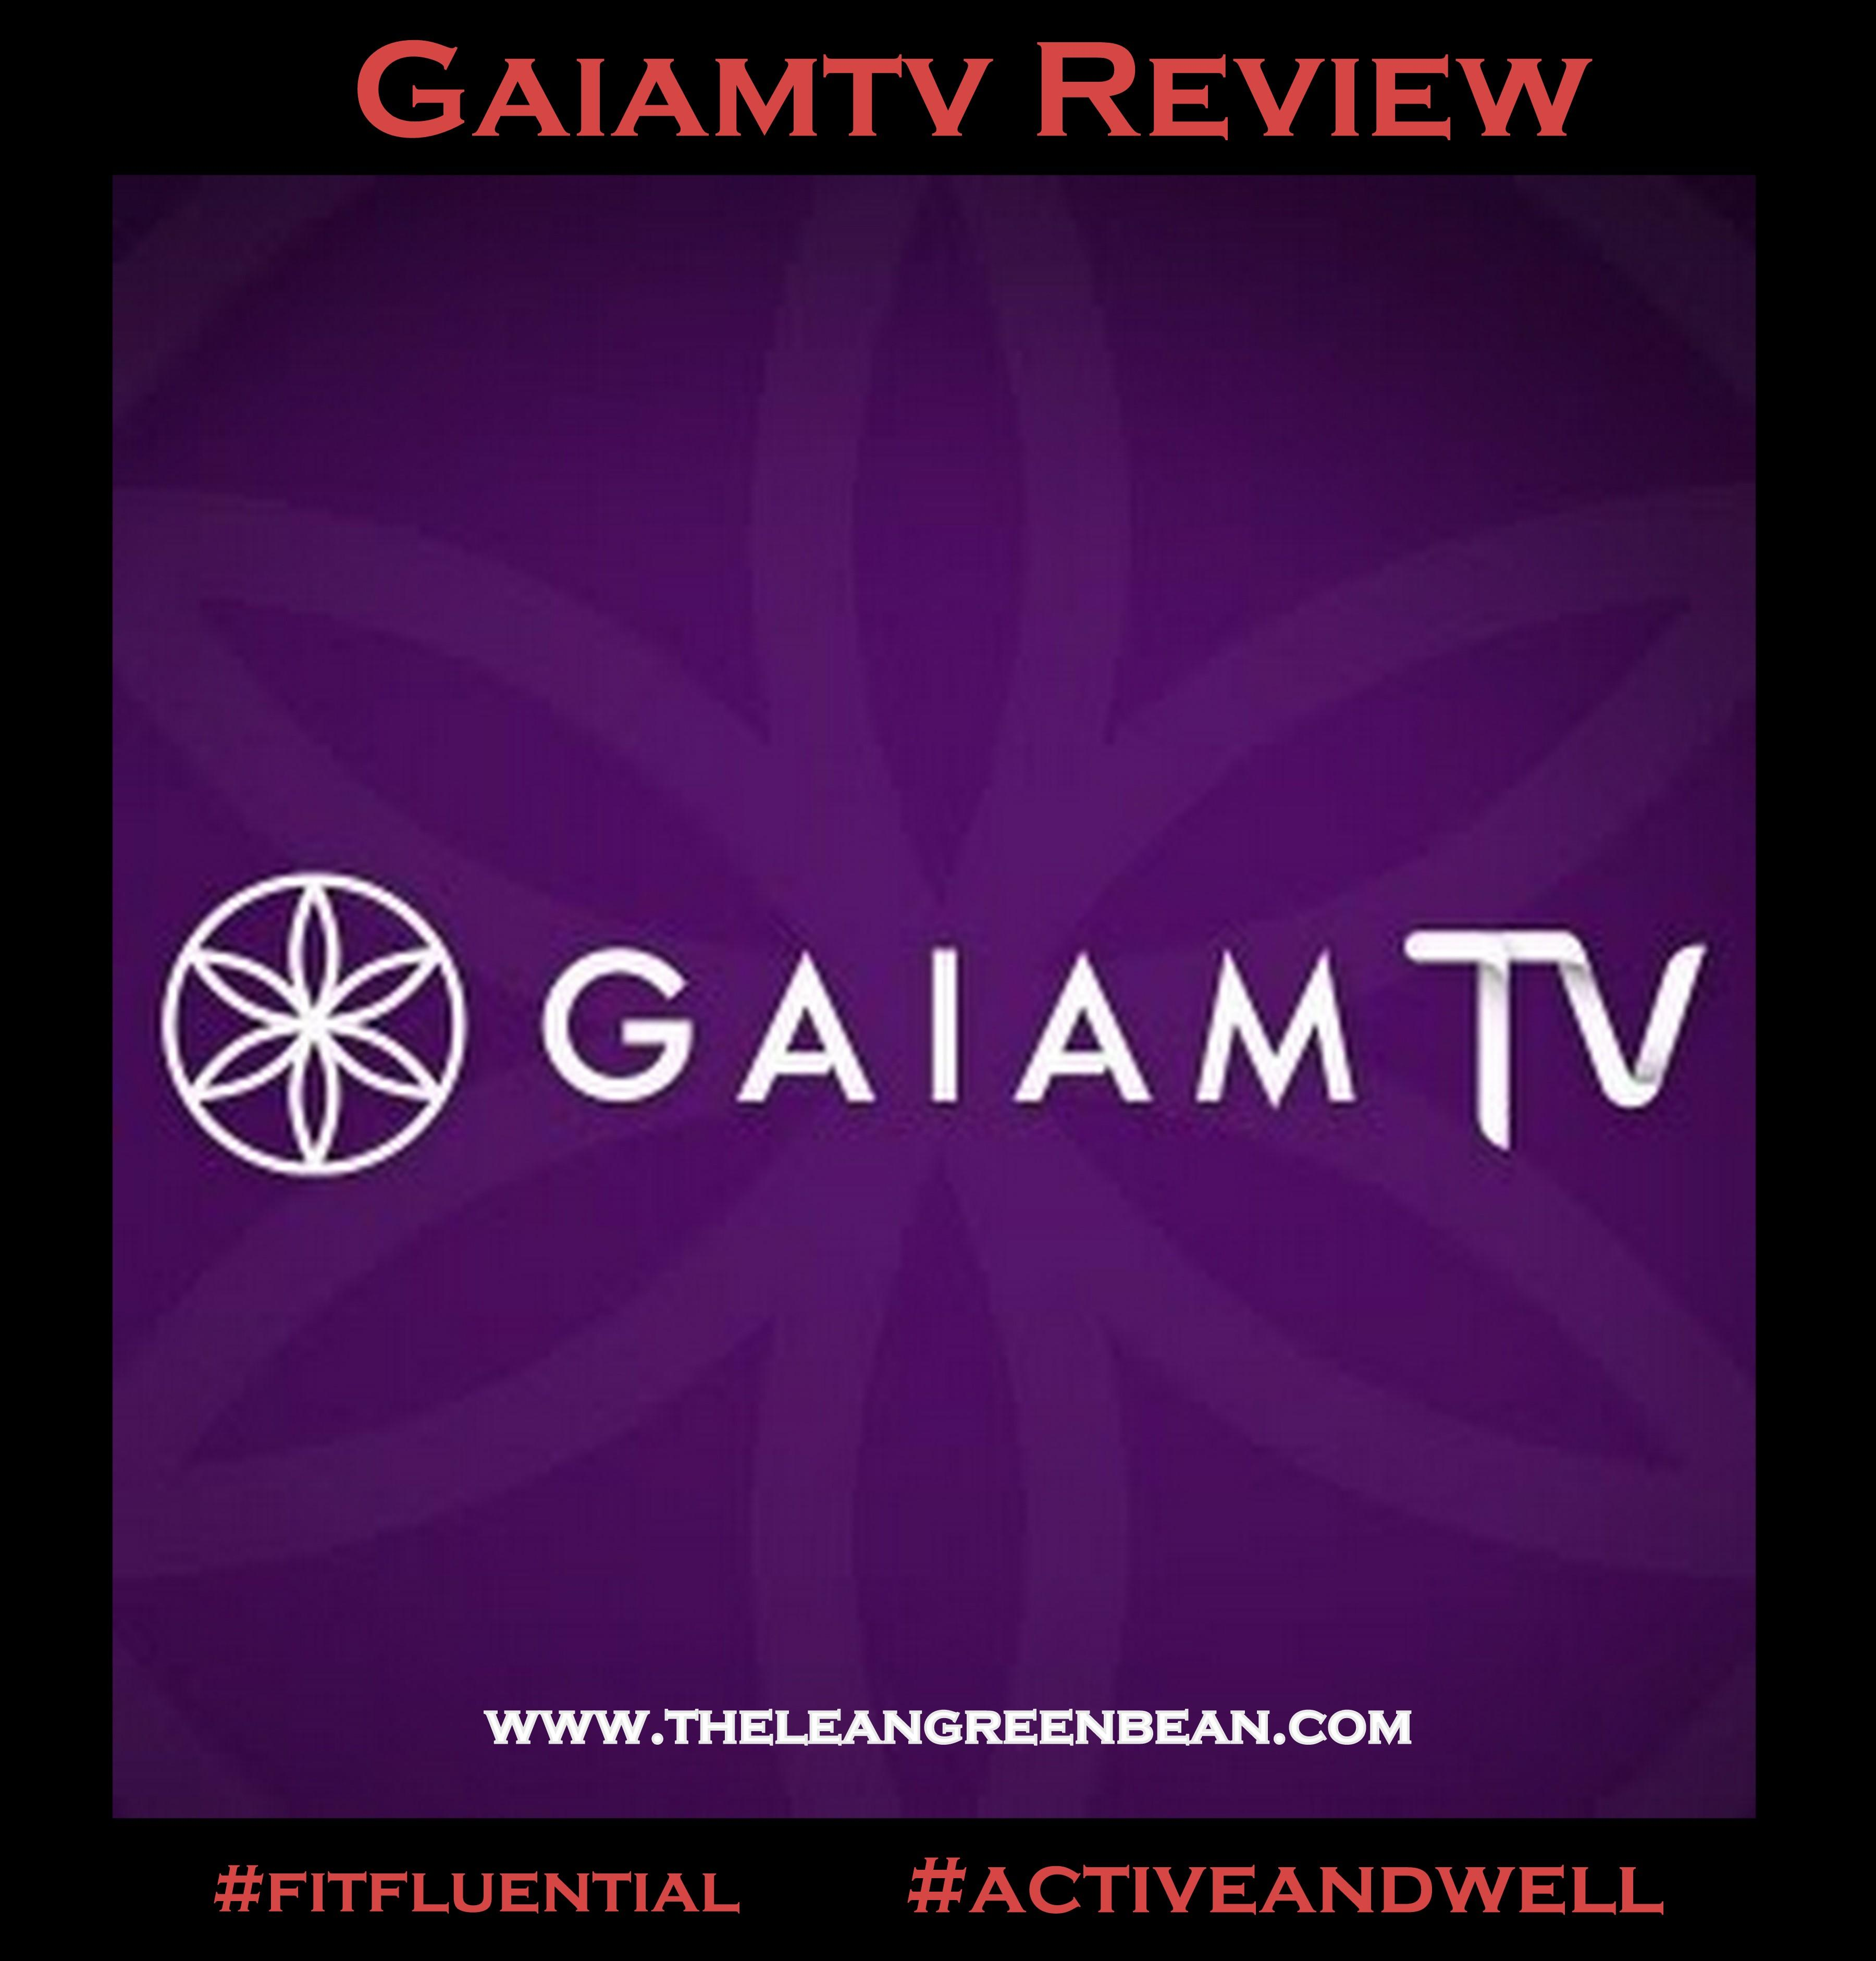 gaiam1 GaiamTV Review